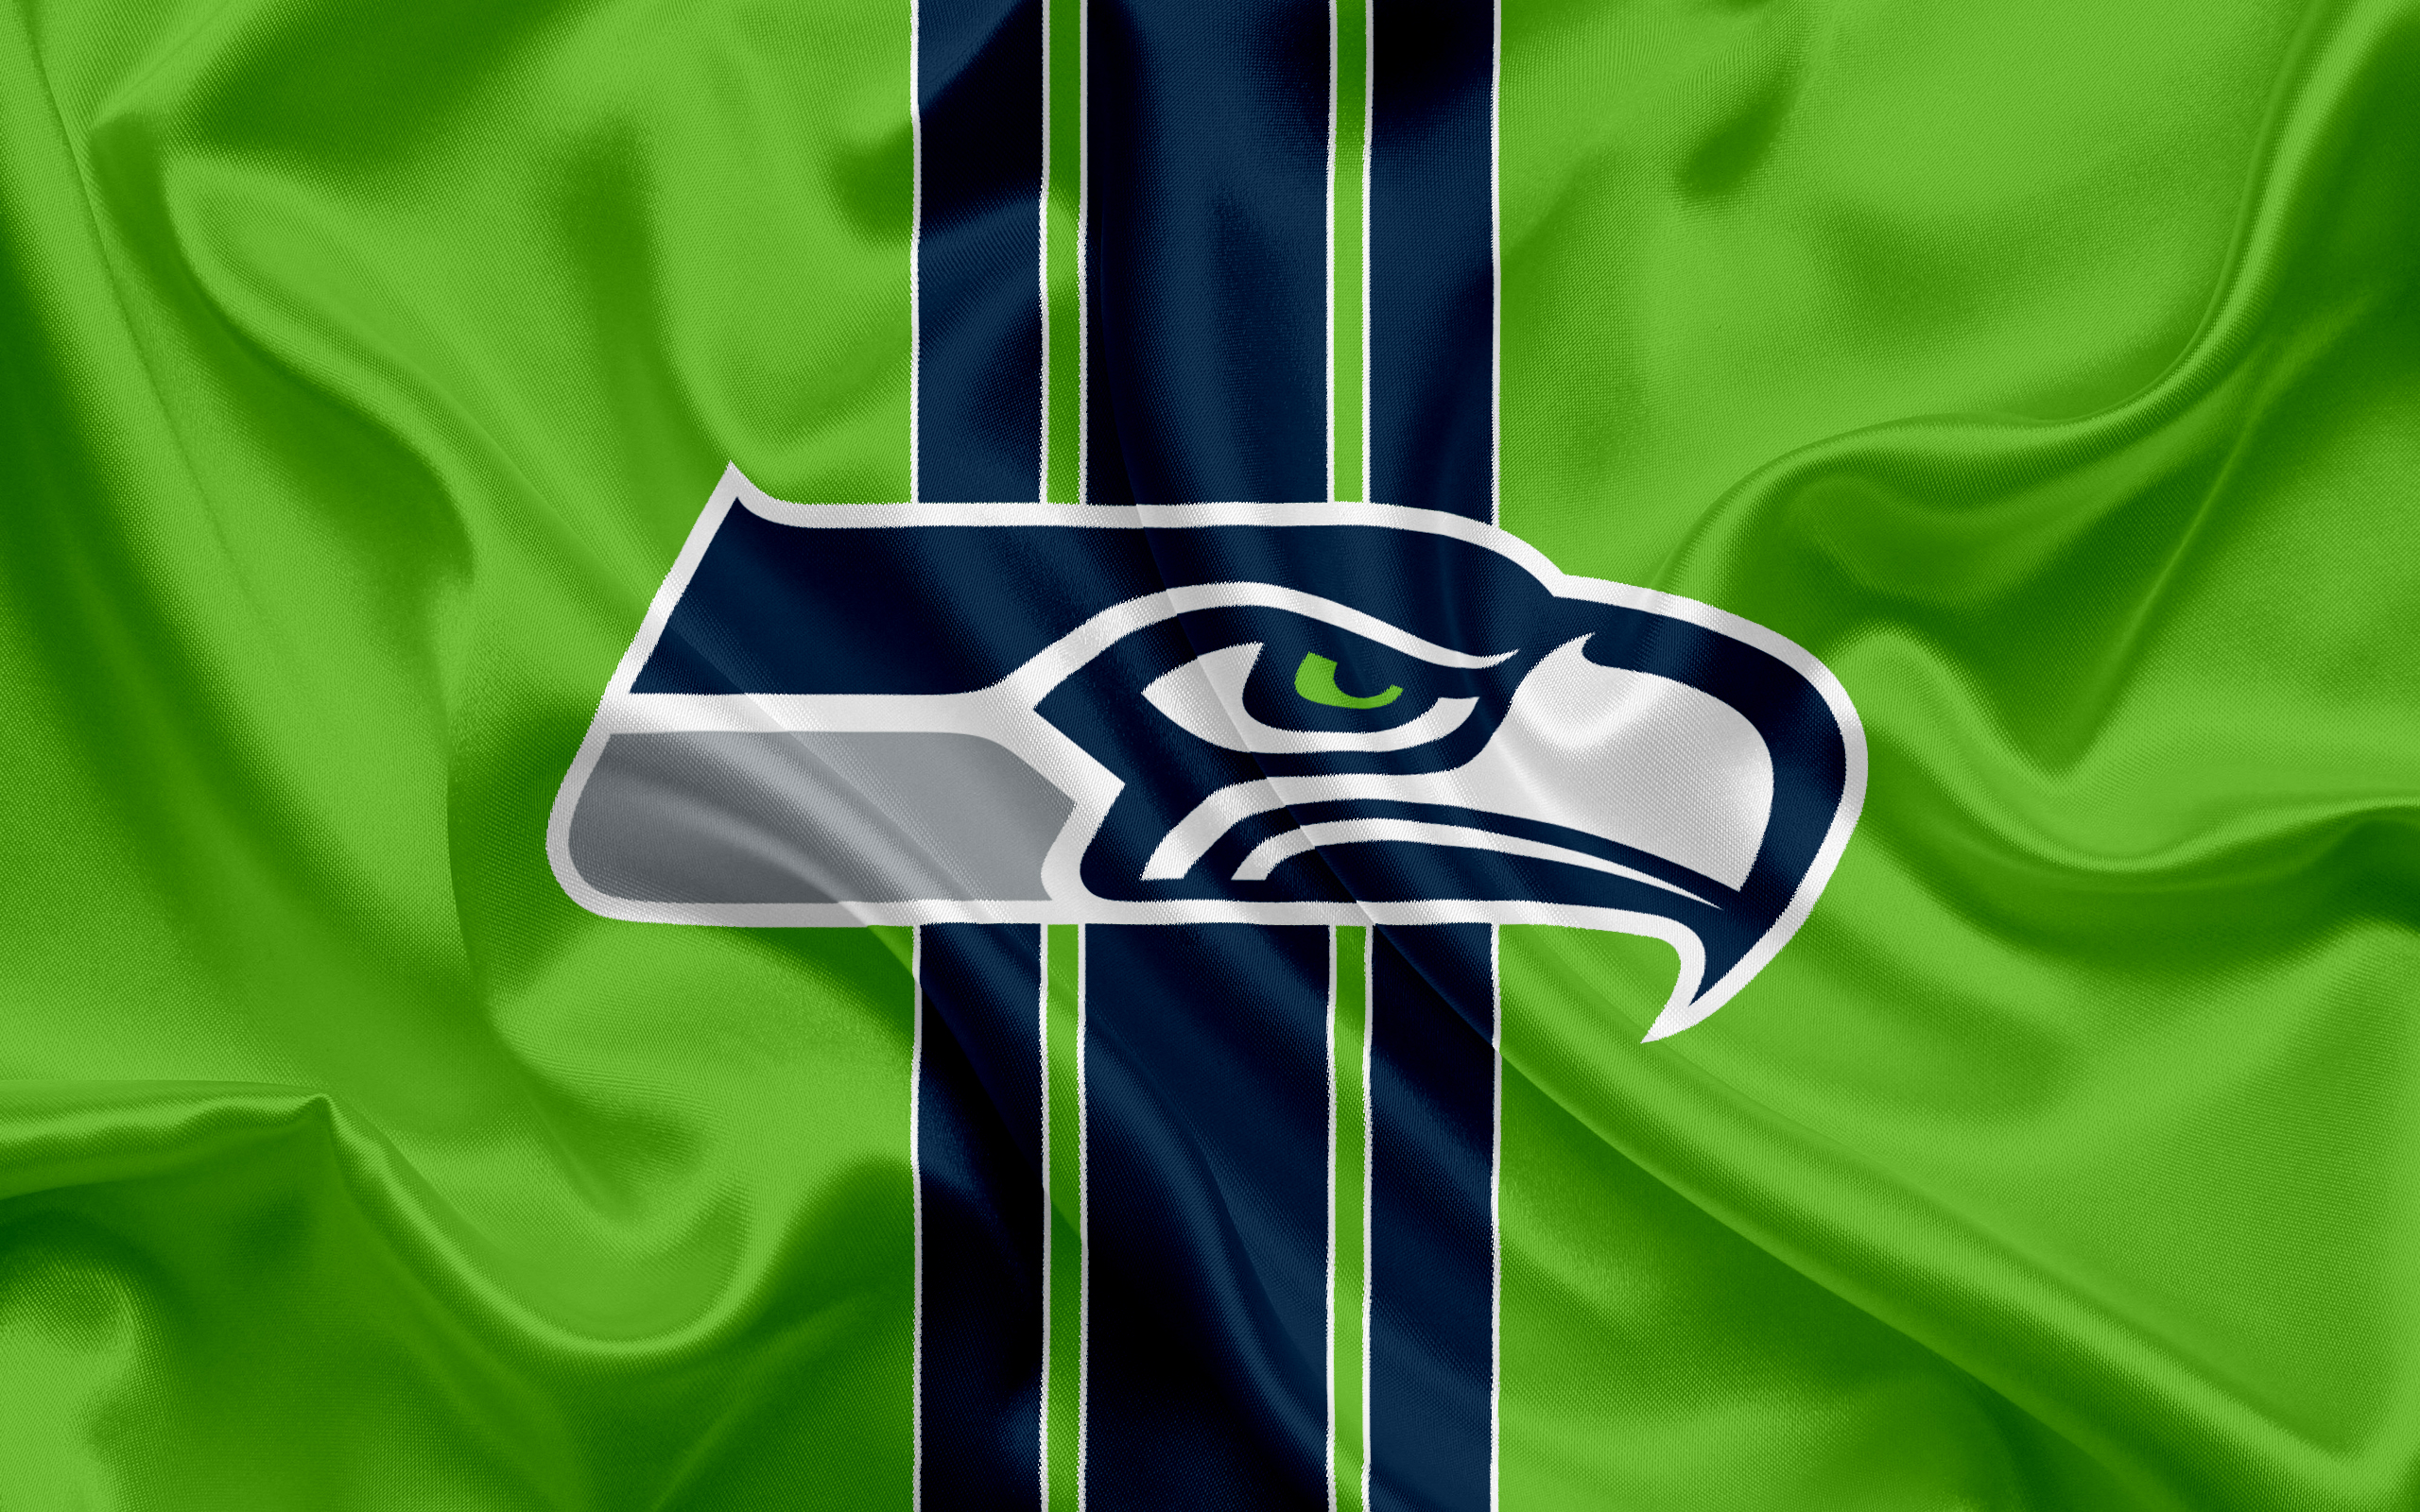 Seattle Seahawks Android Wallpaper